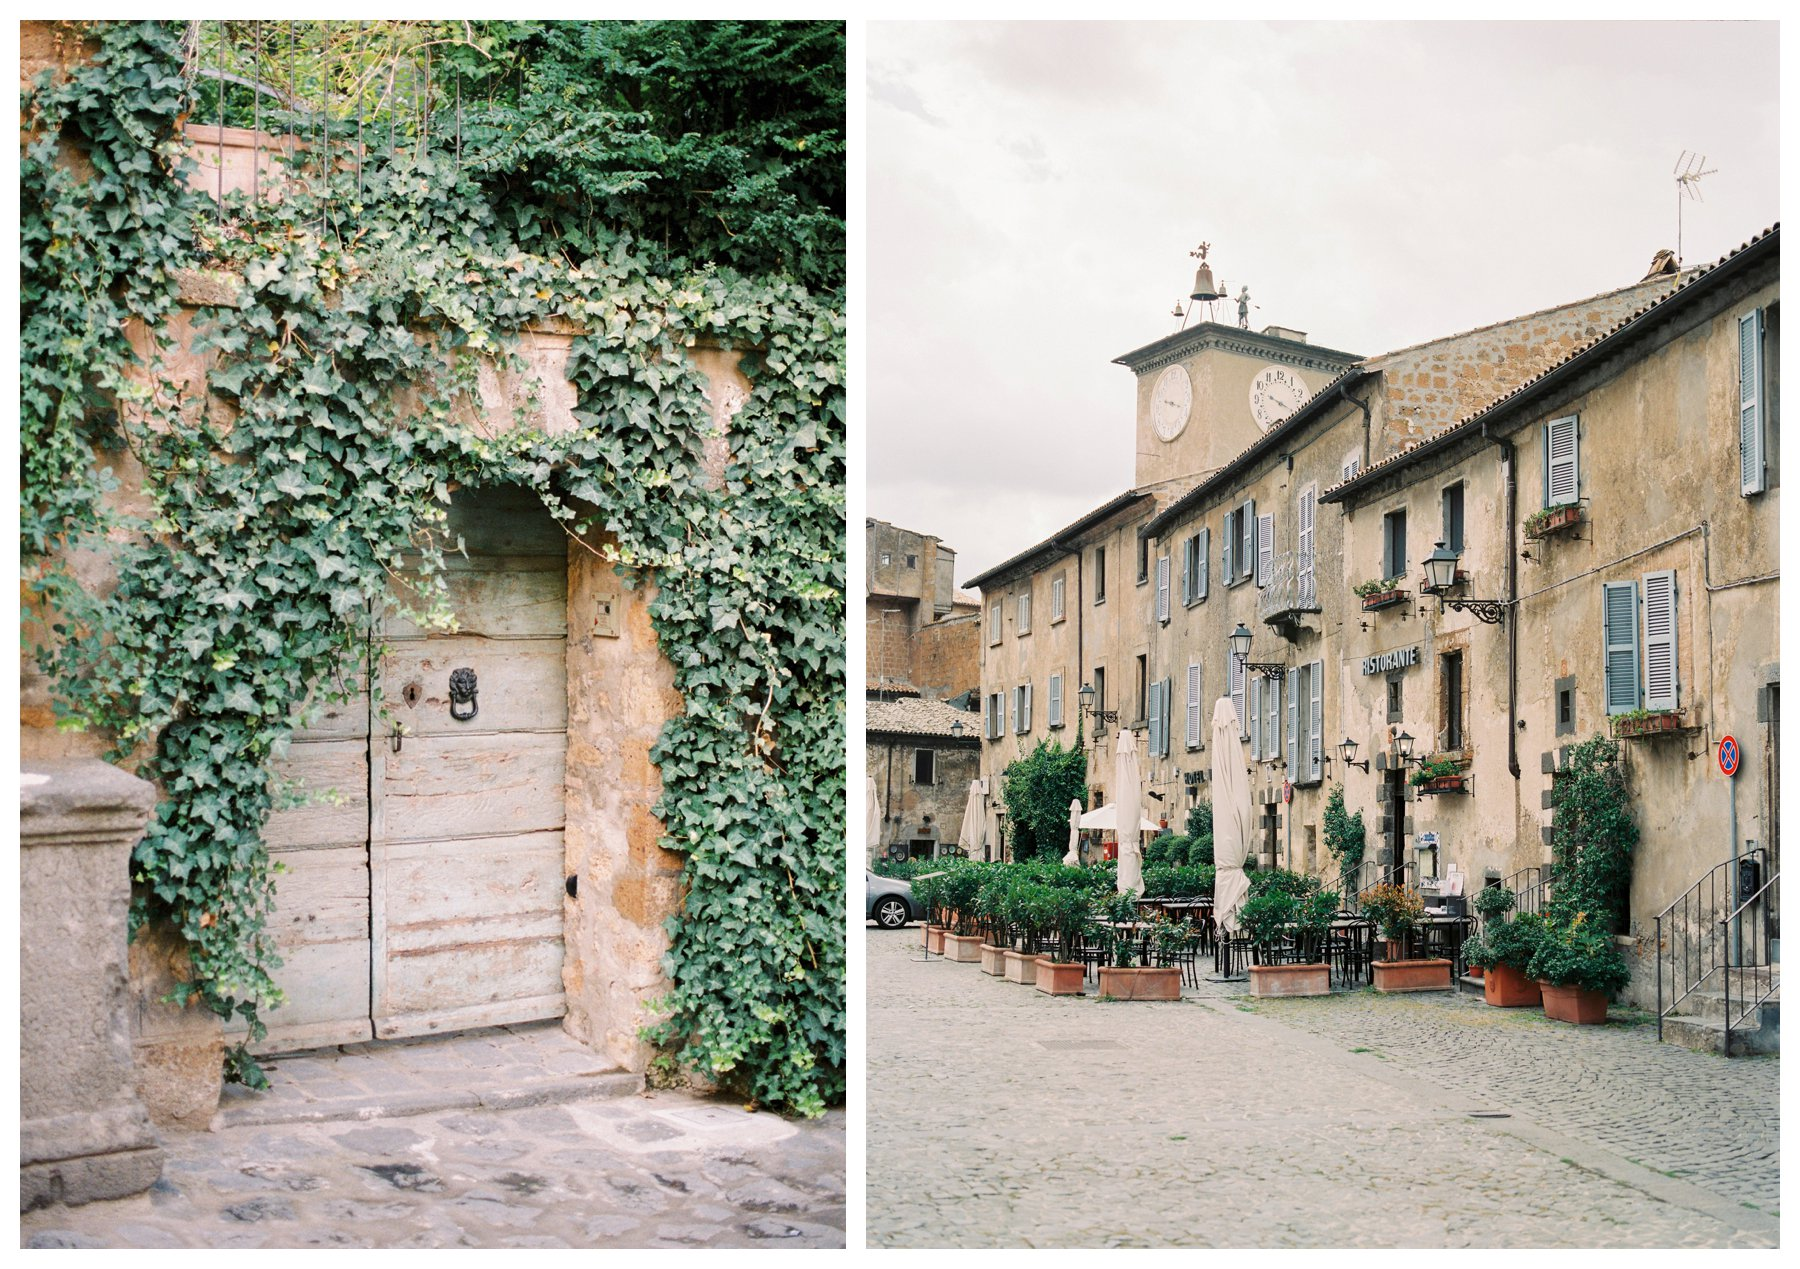 travel photography of the ancient village of Spello in Umbria, Italy